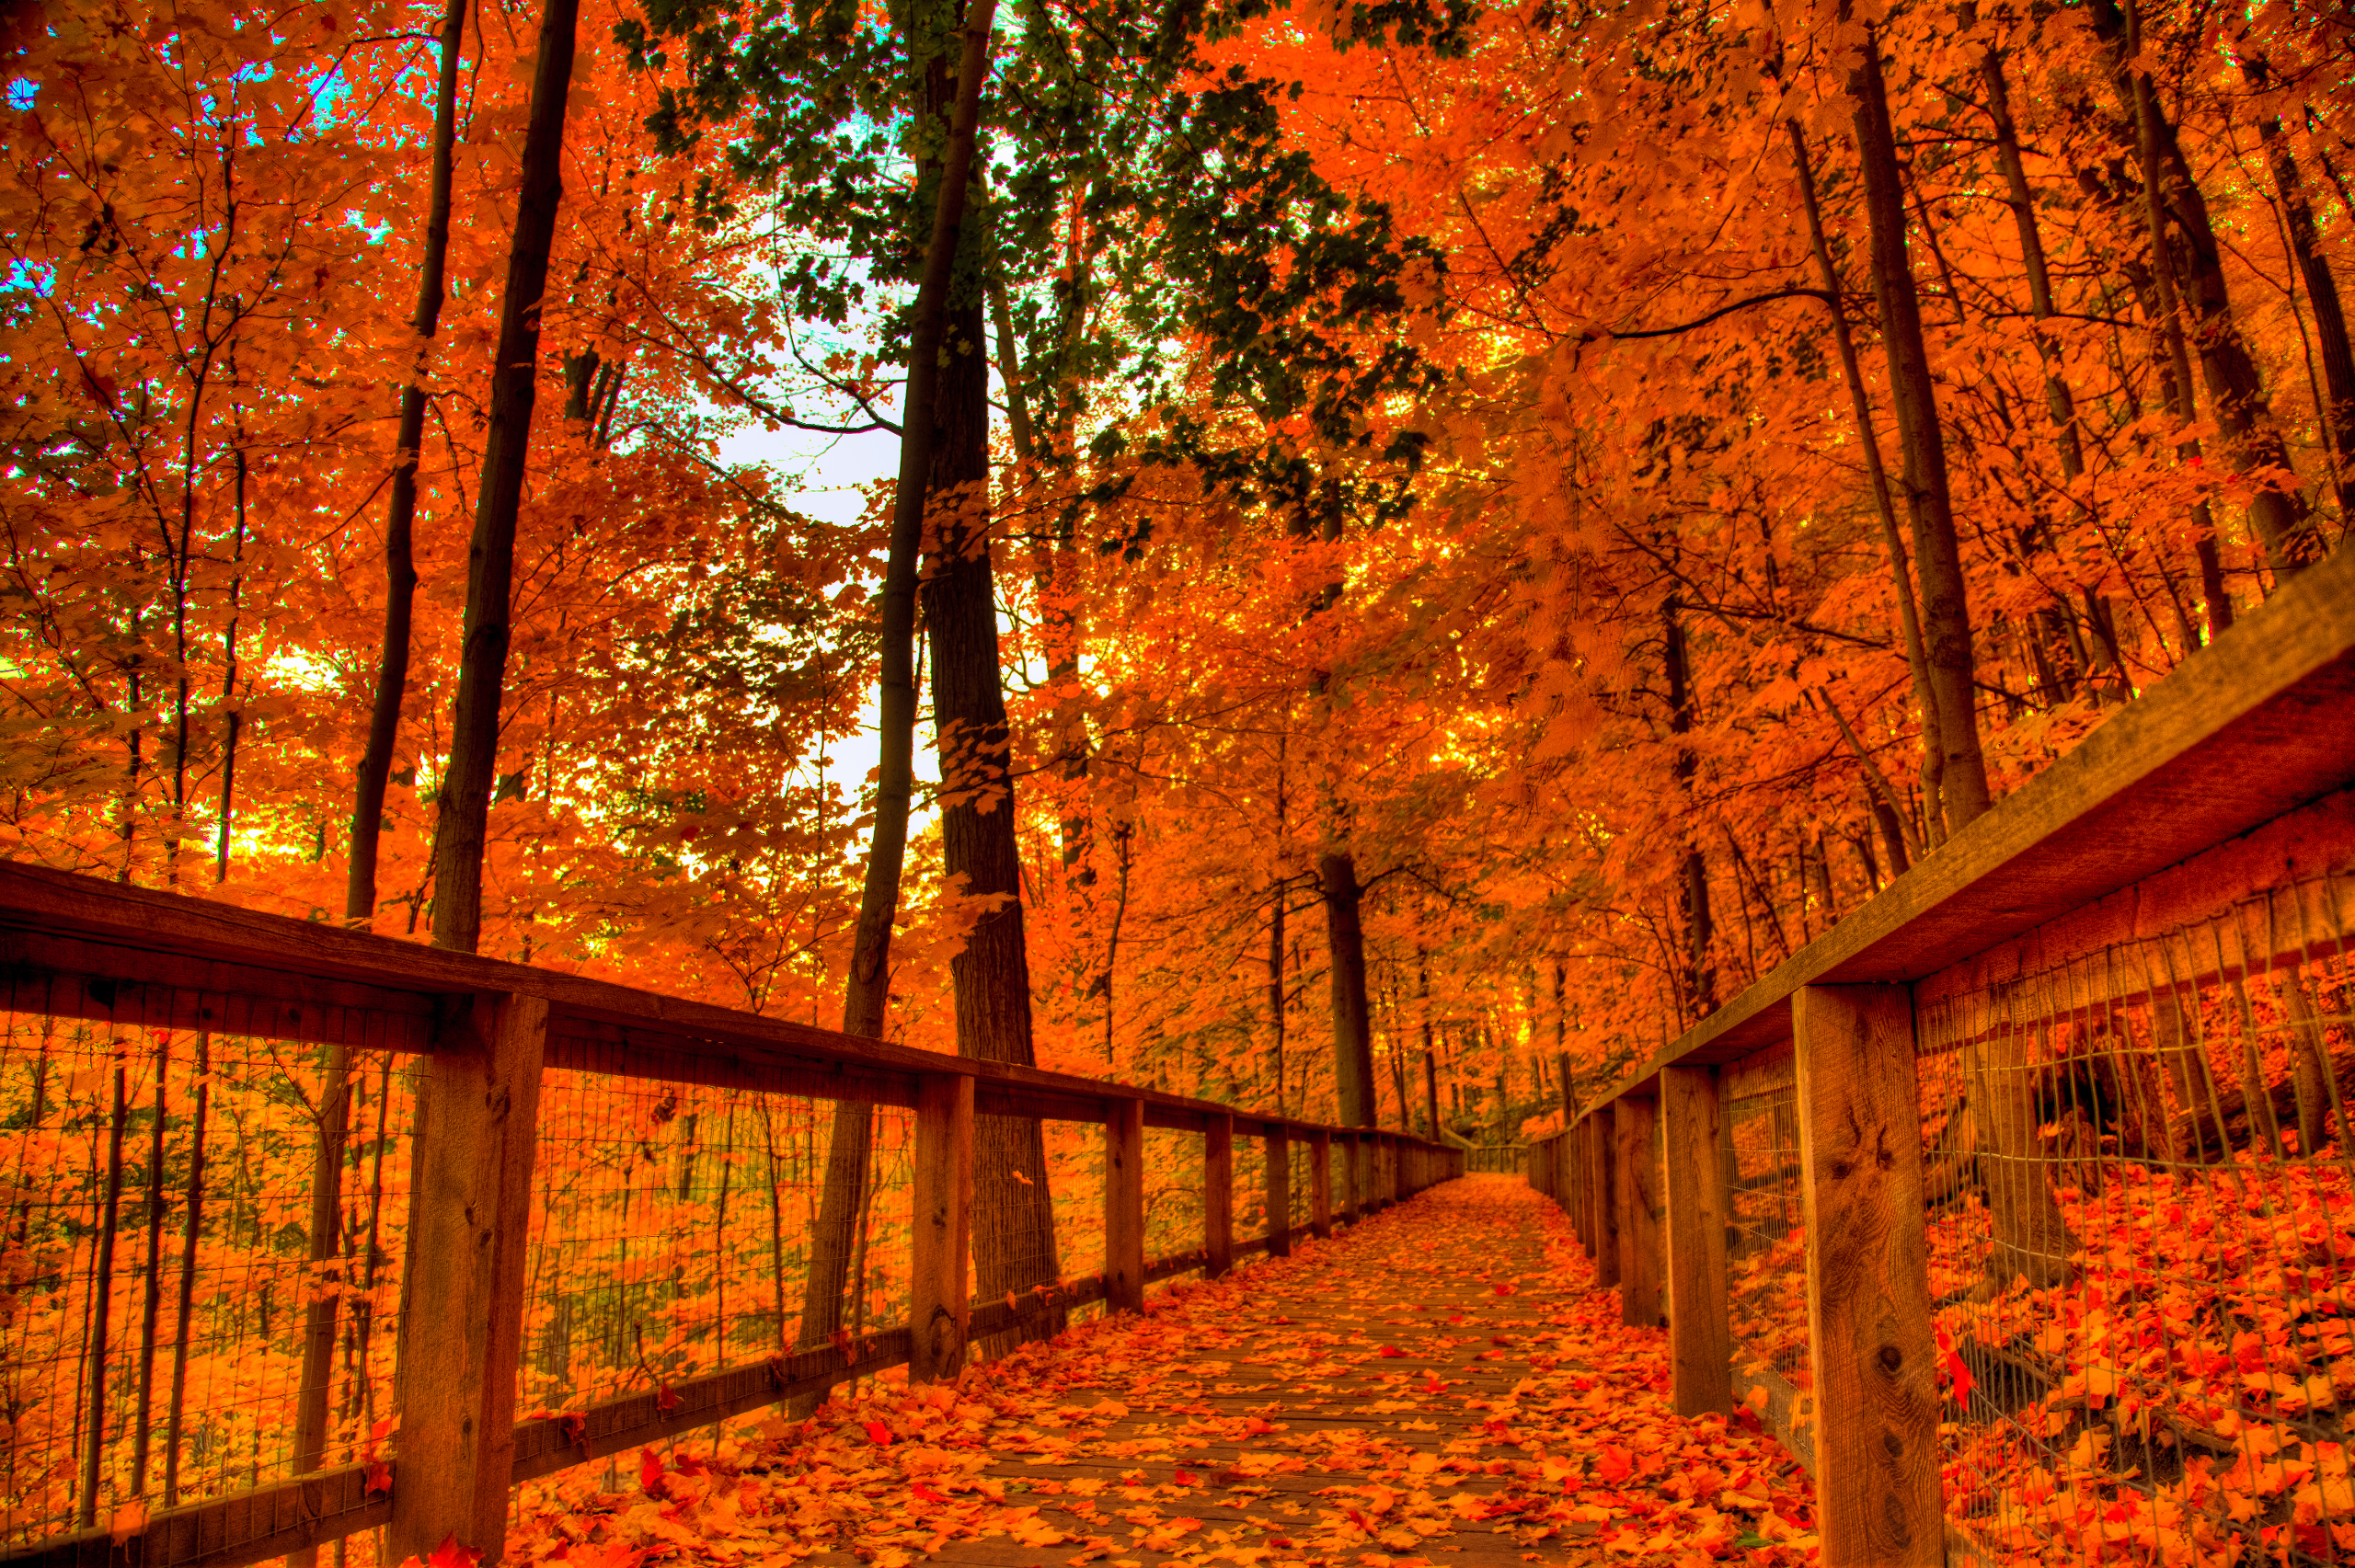 Android Wallpaper: Autumn Colors